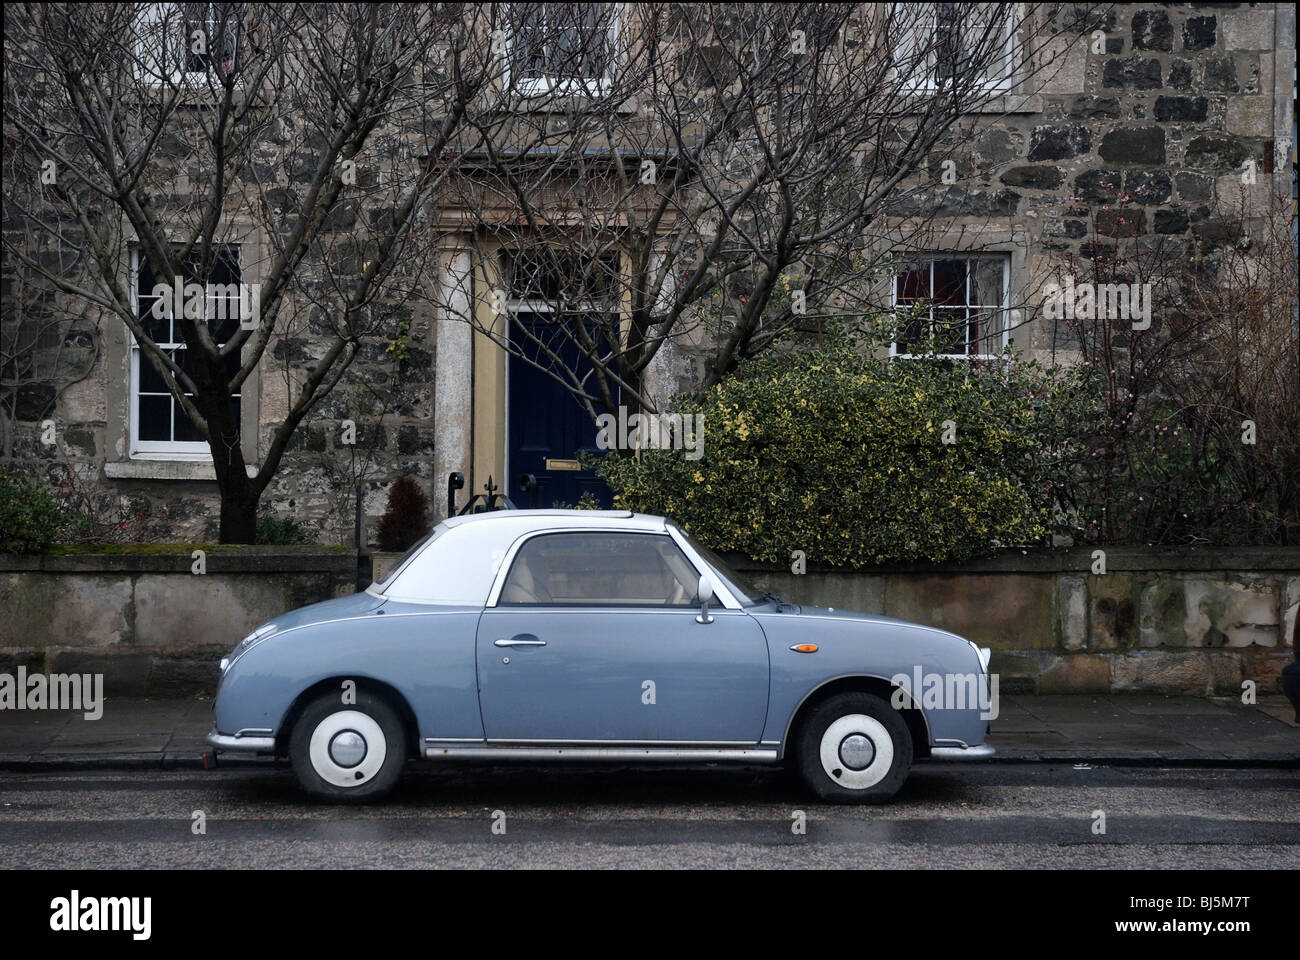 A blue and white Nissan Figaro parked near Leith Links in Edinburgh - Stock Image